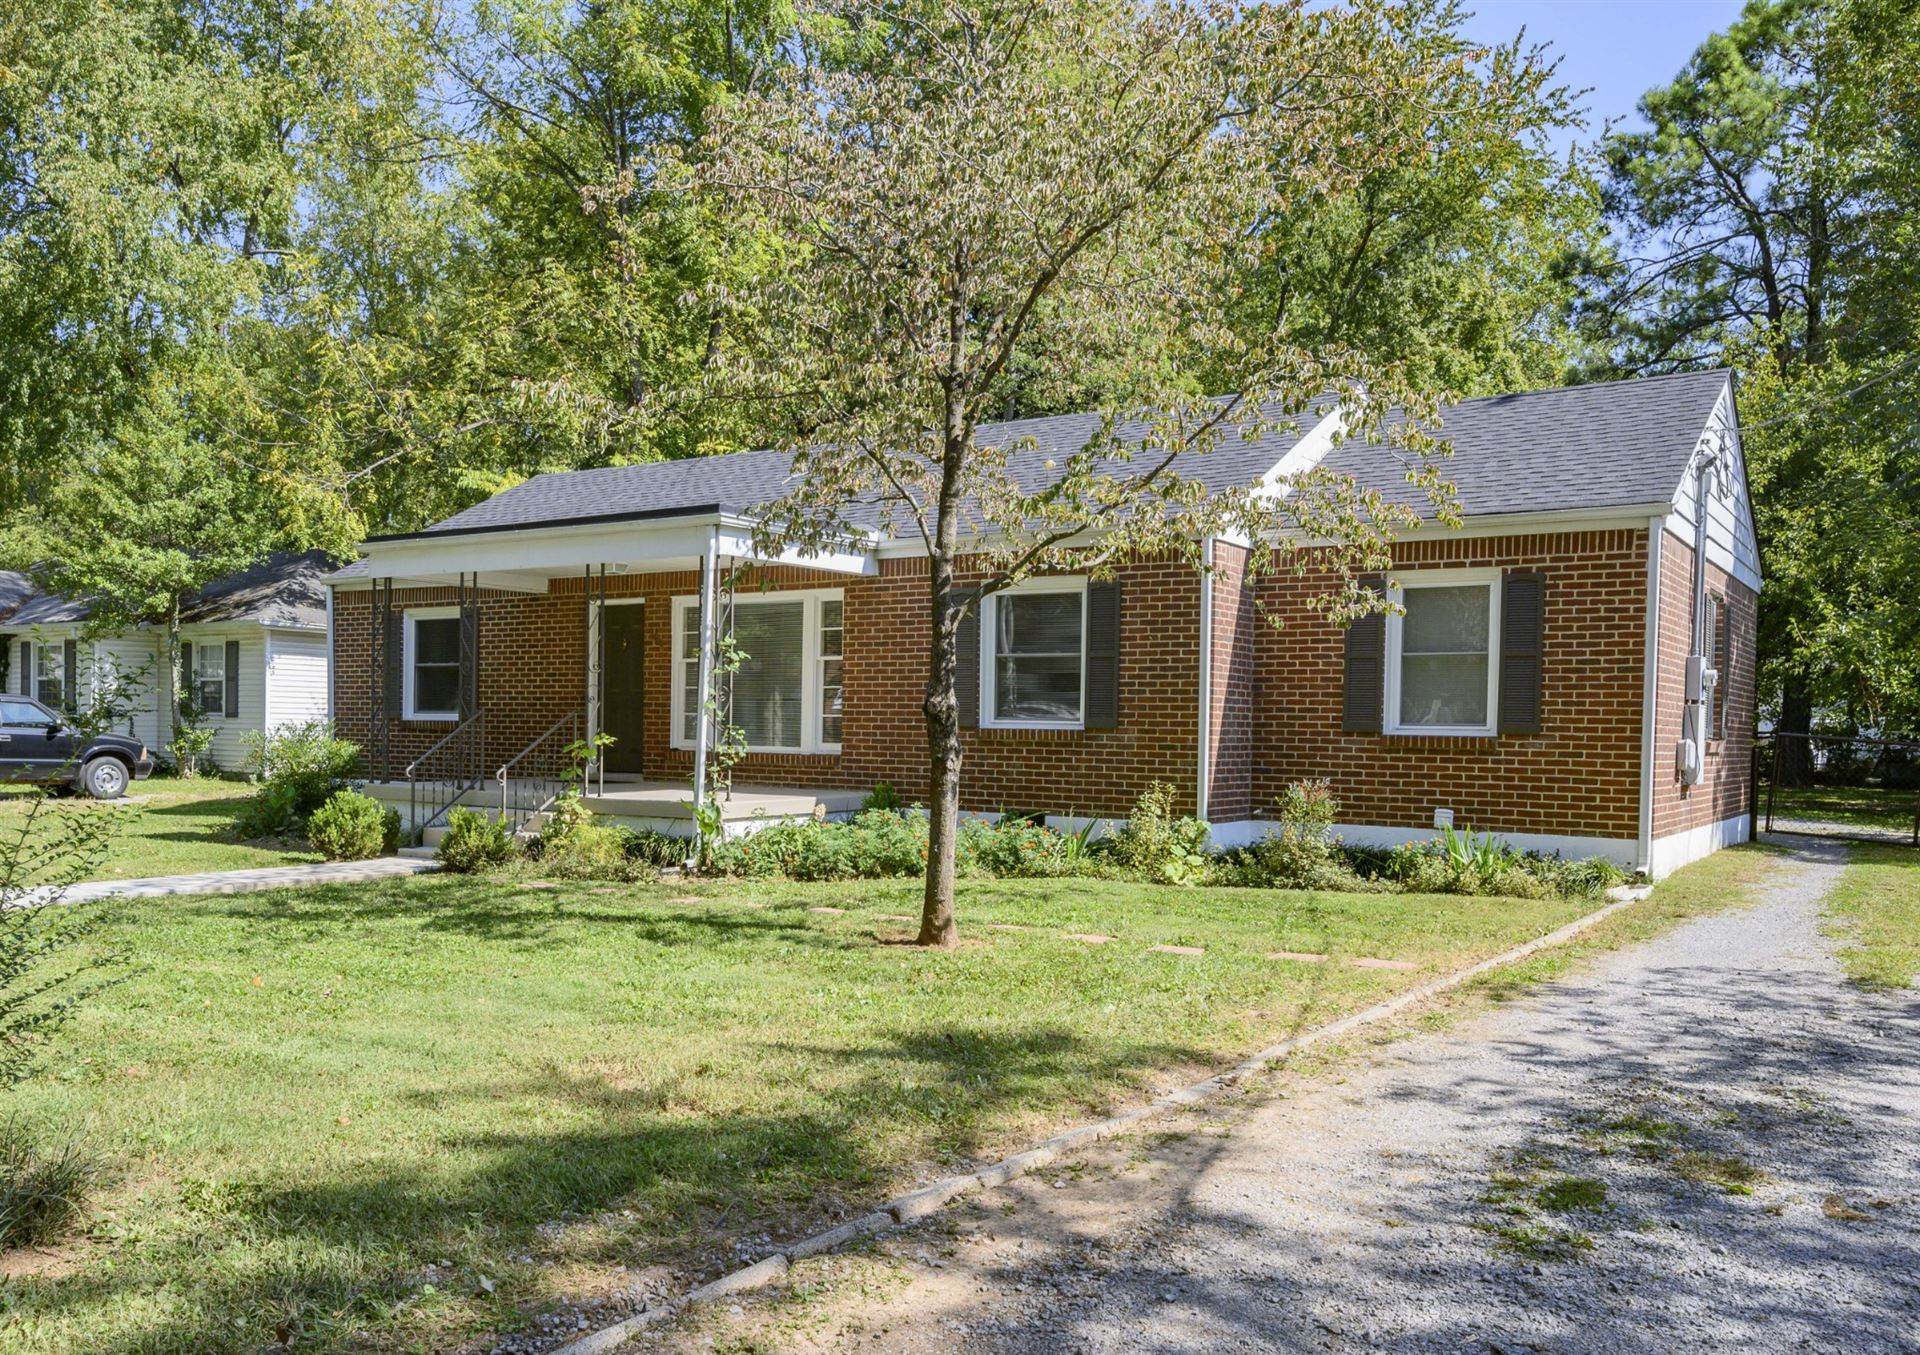 425 2nd Ave, Murfreesboro, TN 37130 - MLS#: 2196531